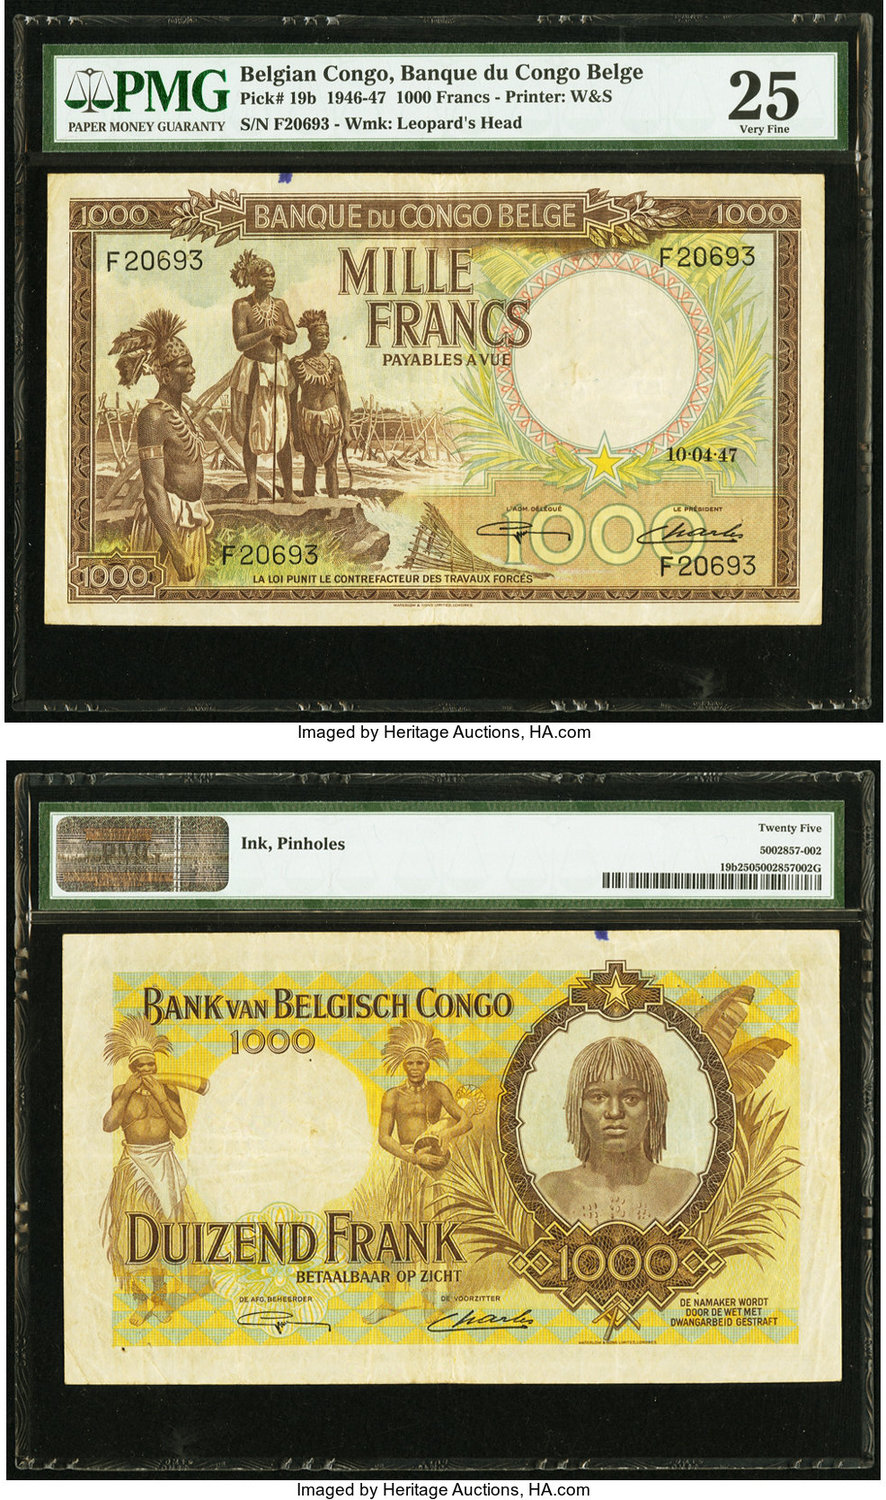 World Currency Belgian Congo Banque Du Belge 1000 Francs 10 4 47 Pick 19b Three Native Fishermen Ear On The